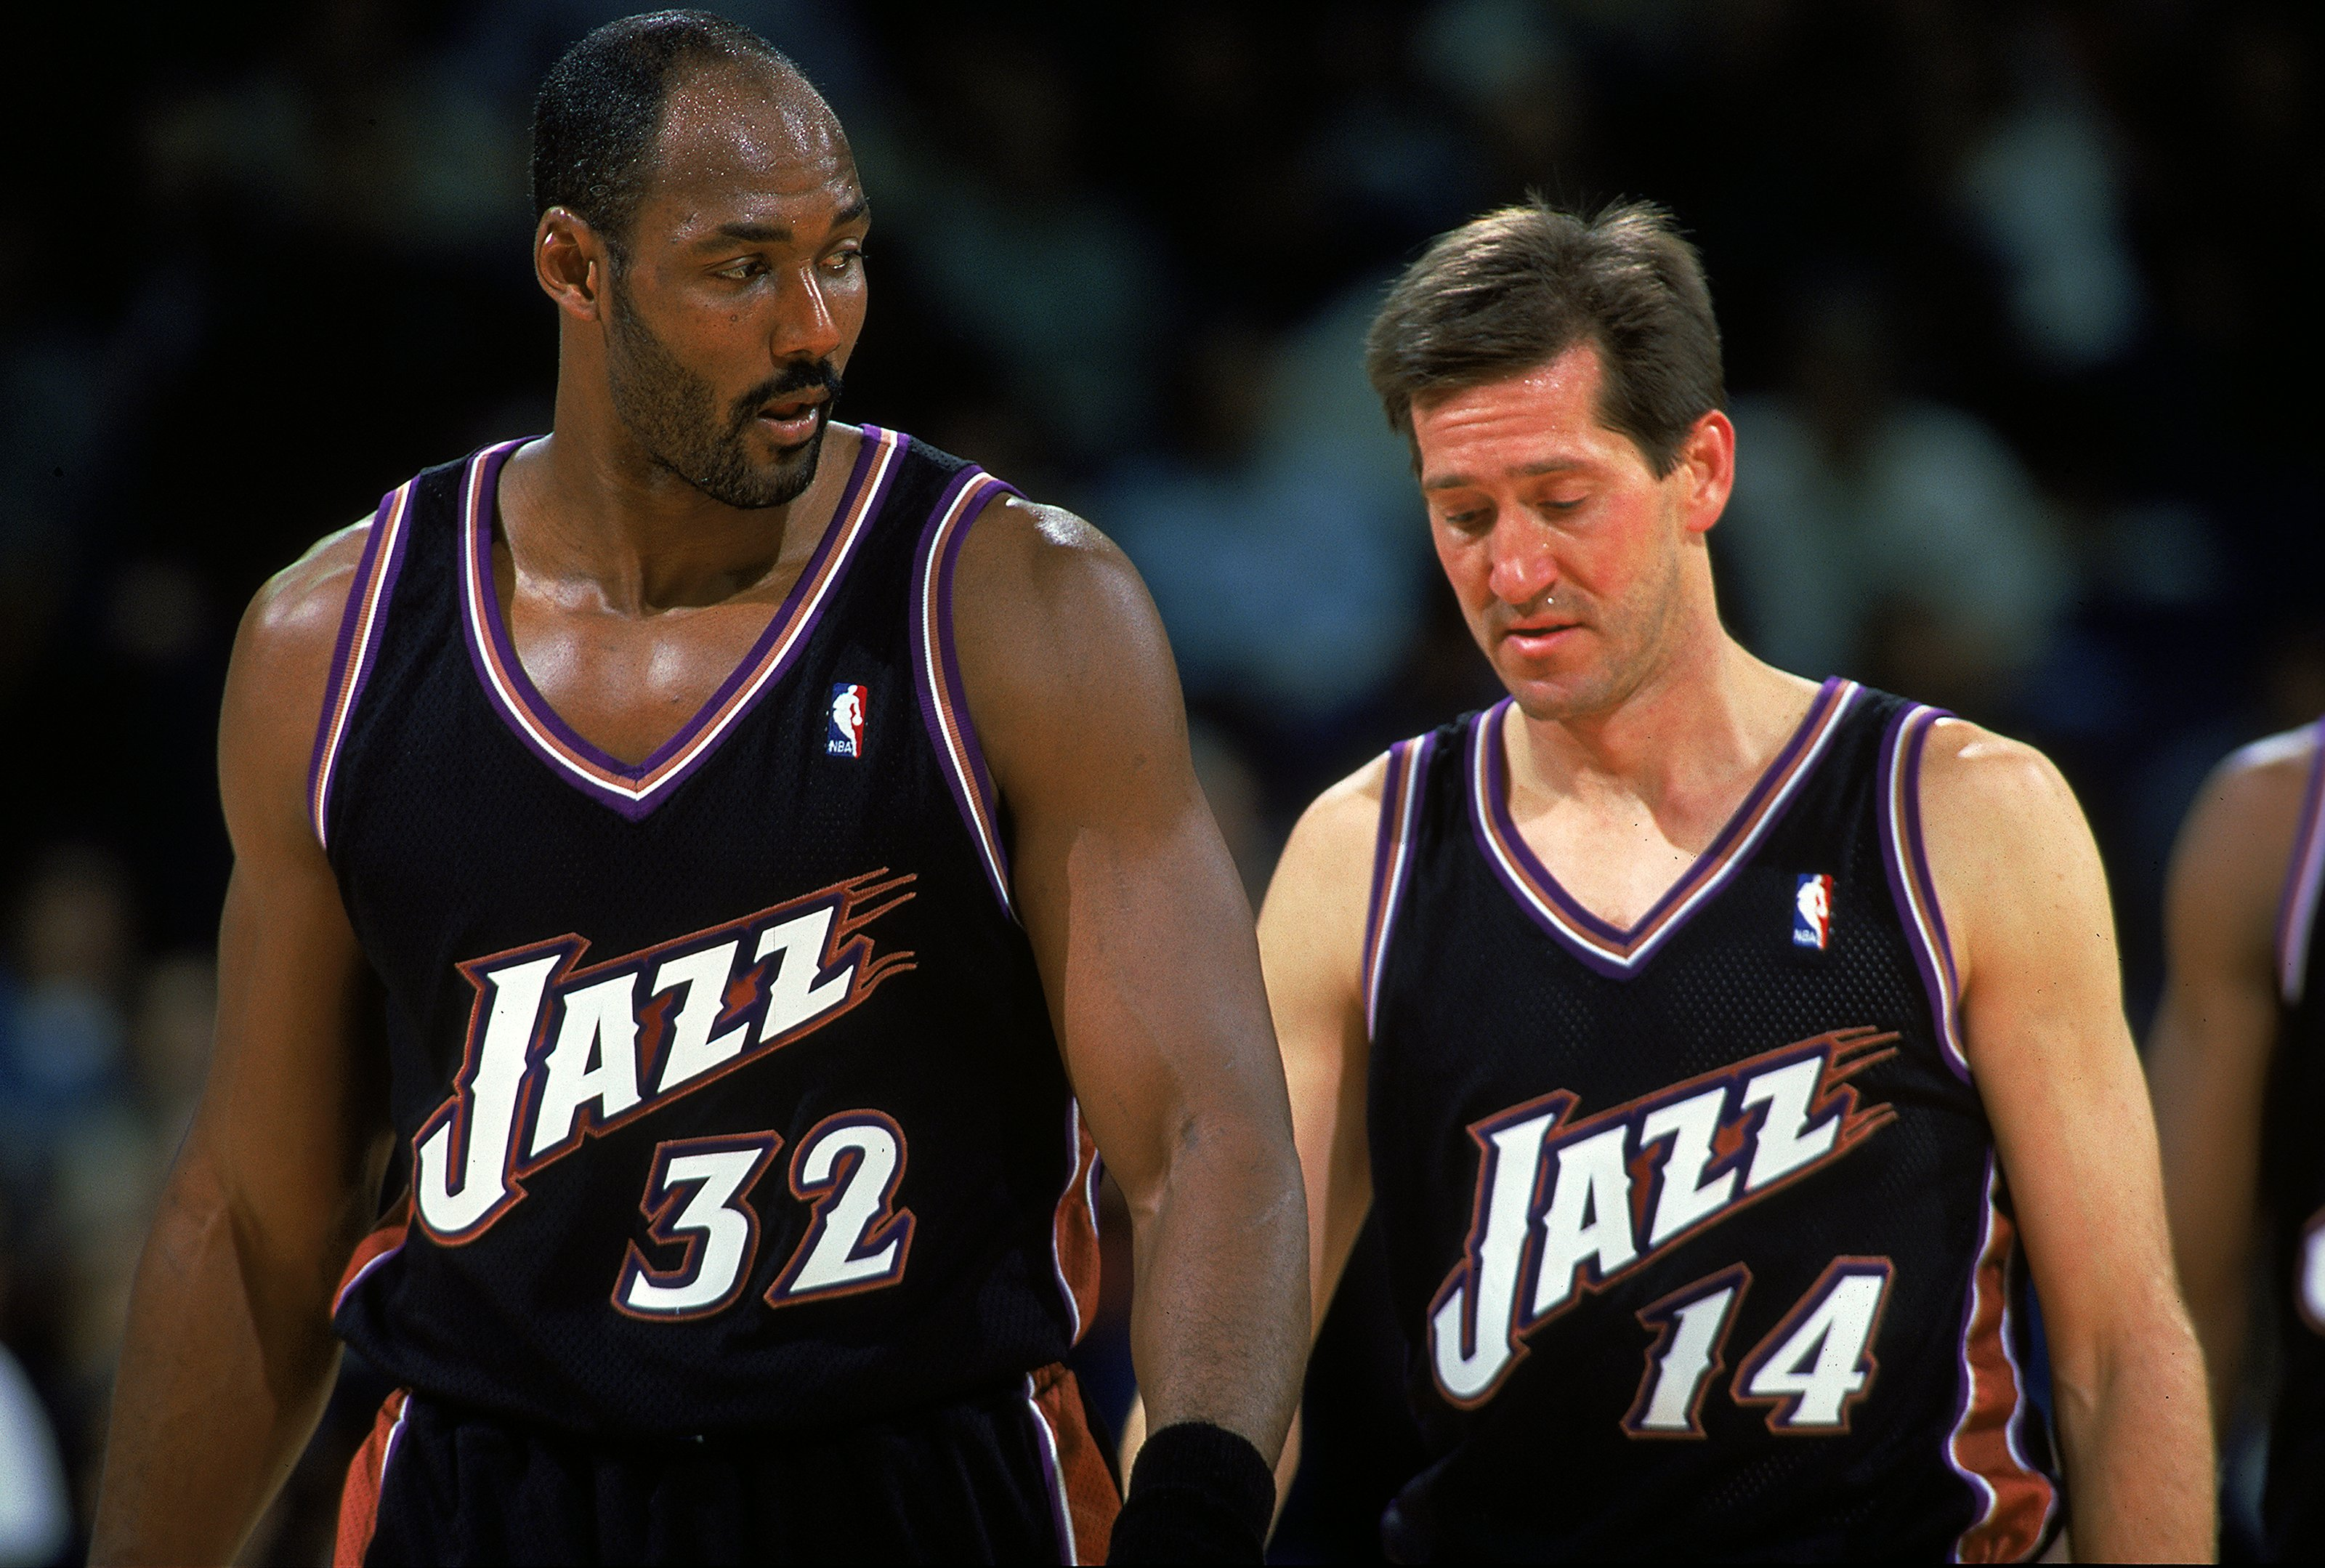 4 Dec 1999:  Karl Malone #32 and Jeff Hornacek #14 of the Utah Jazz walking back onto the court from a time out during the game against the Golden State Warriors at the Oakland Coliseum in Oakland, California. The Jazz defeated the Warriors 94-82.     Man